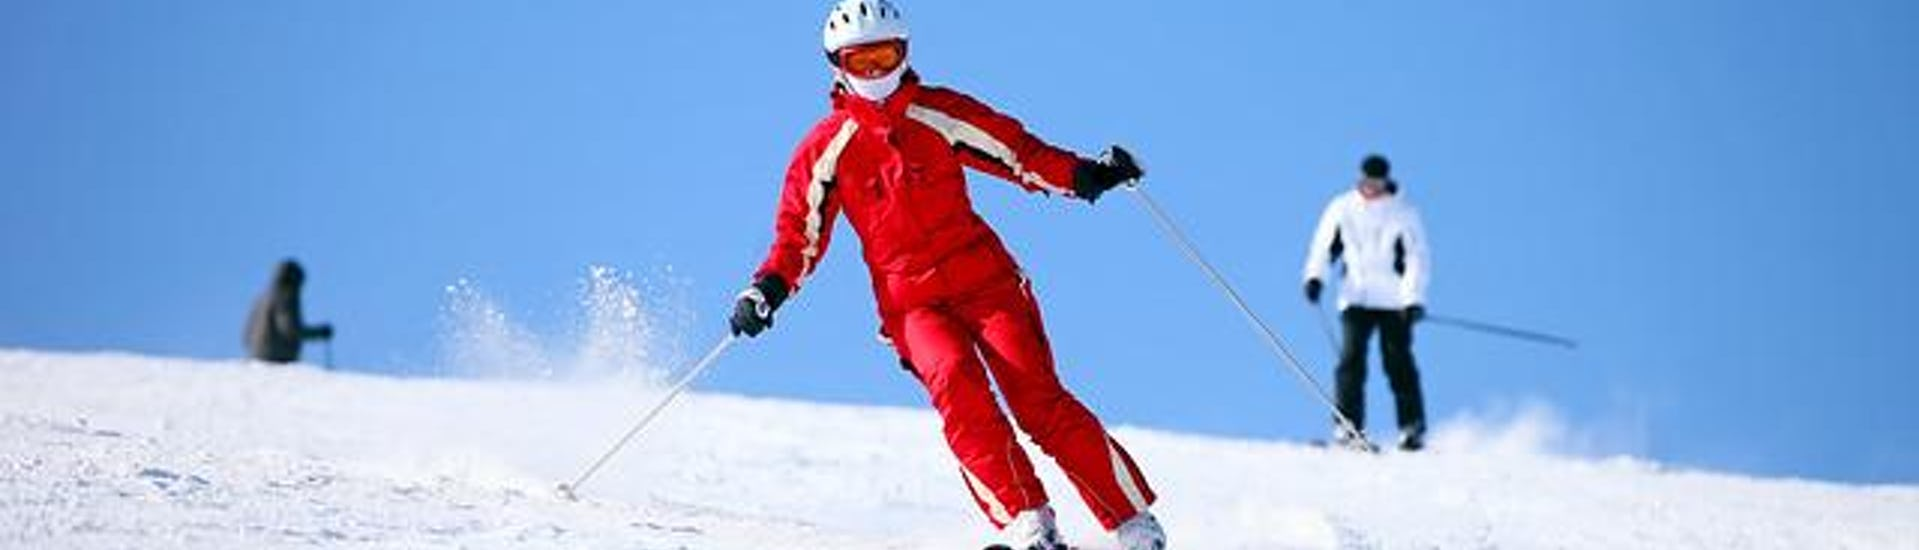 "Ski Lessons ""All-in-One"" for Adults - Advanced"